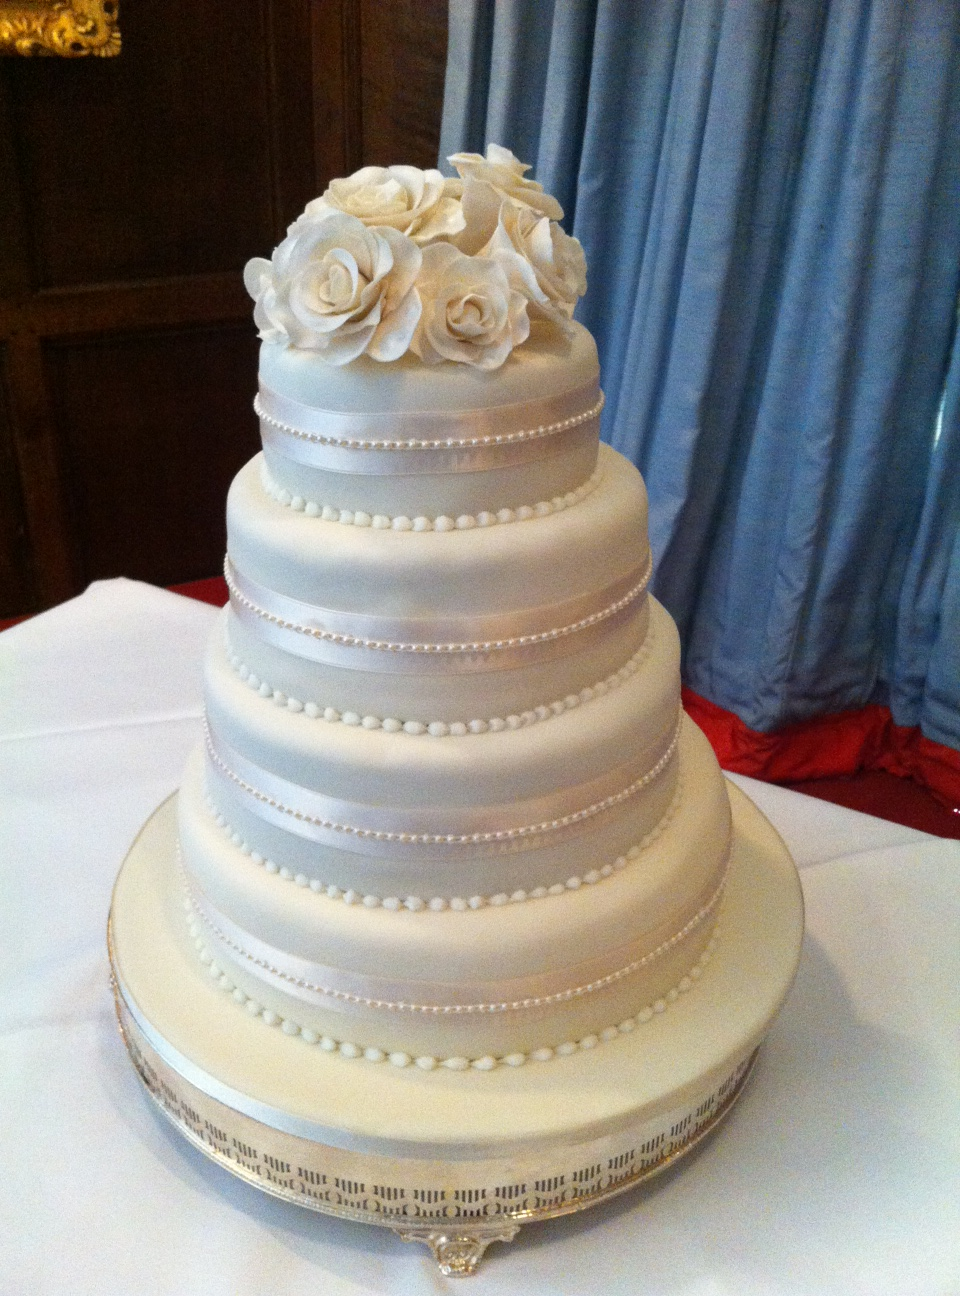 Flour Power Cake Journey: The WOW Factor Wedding Cake!